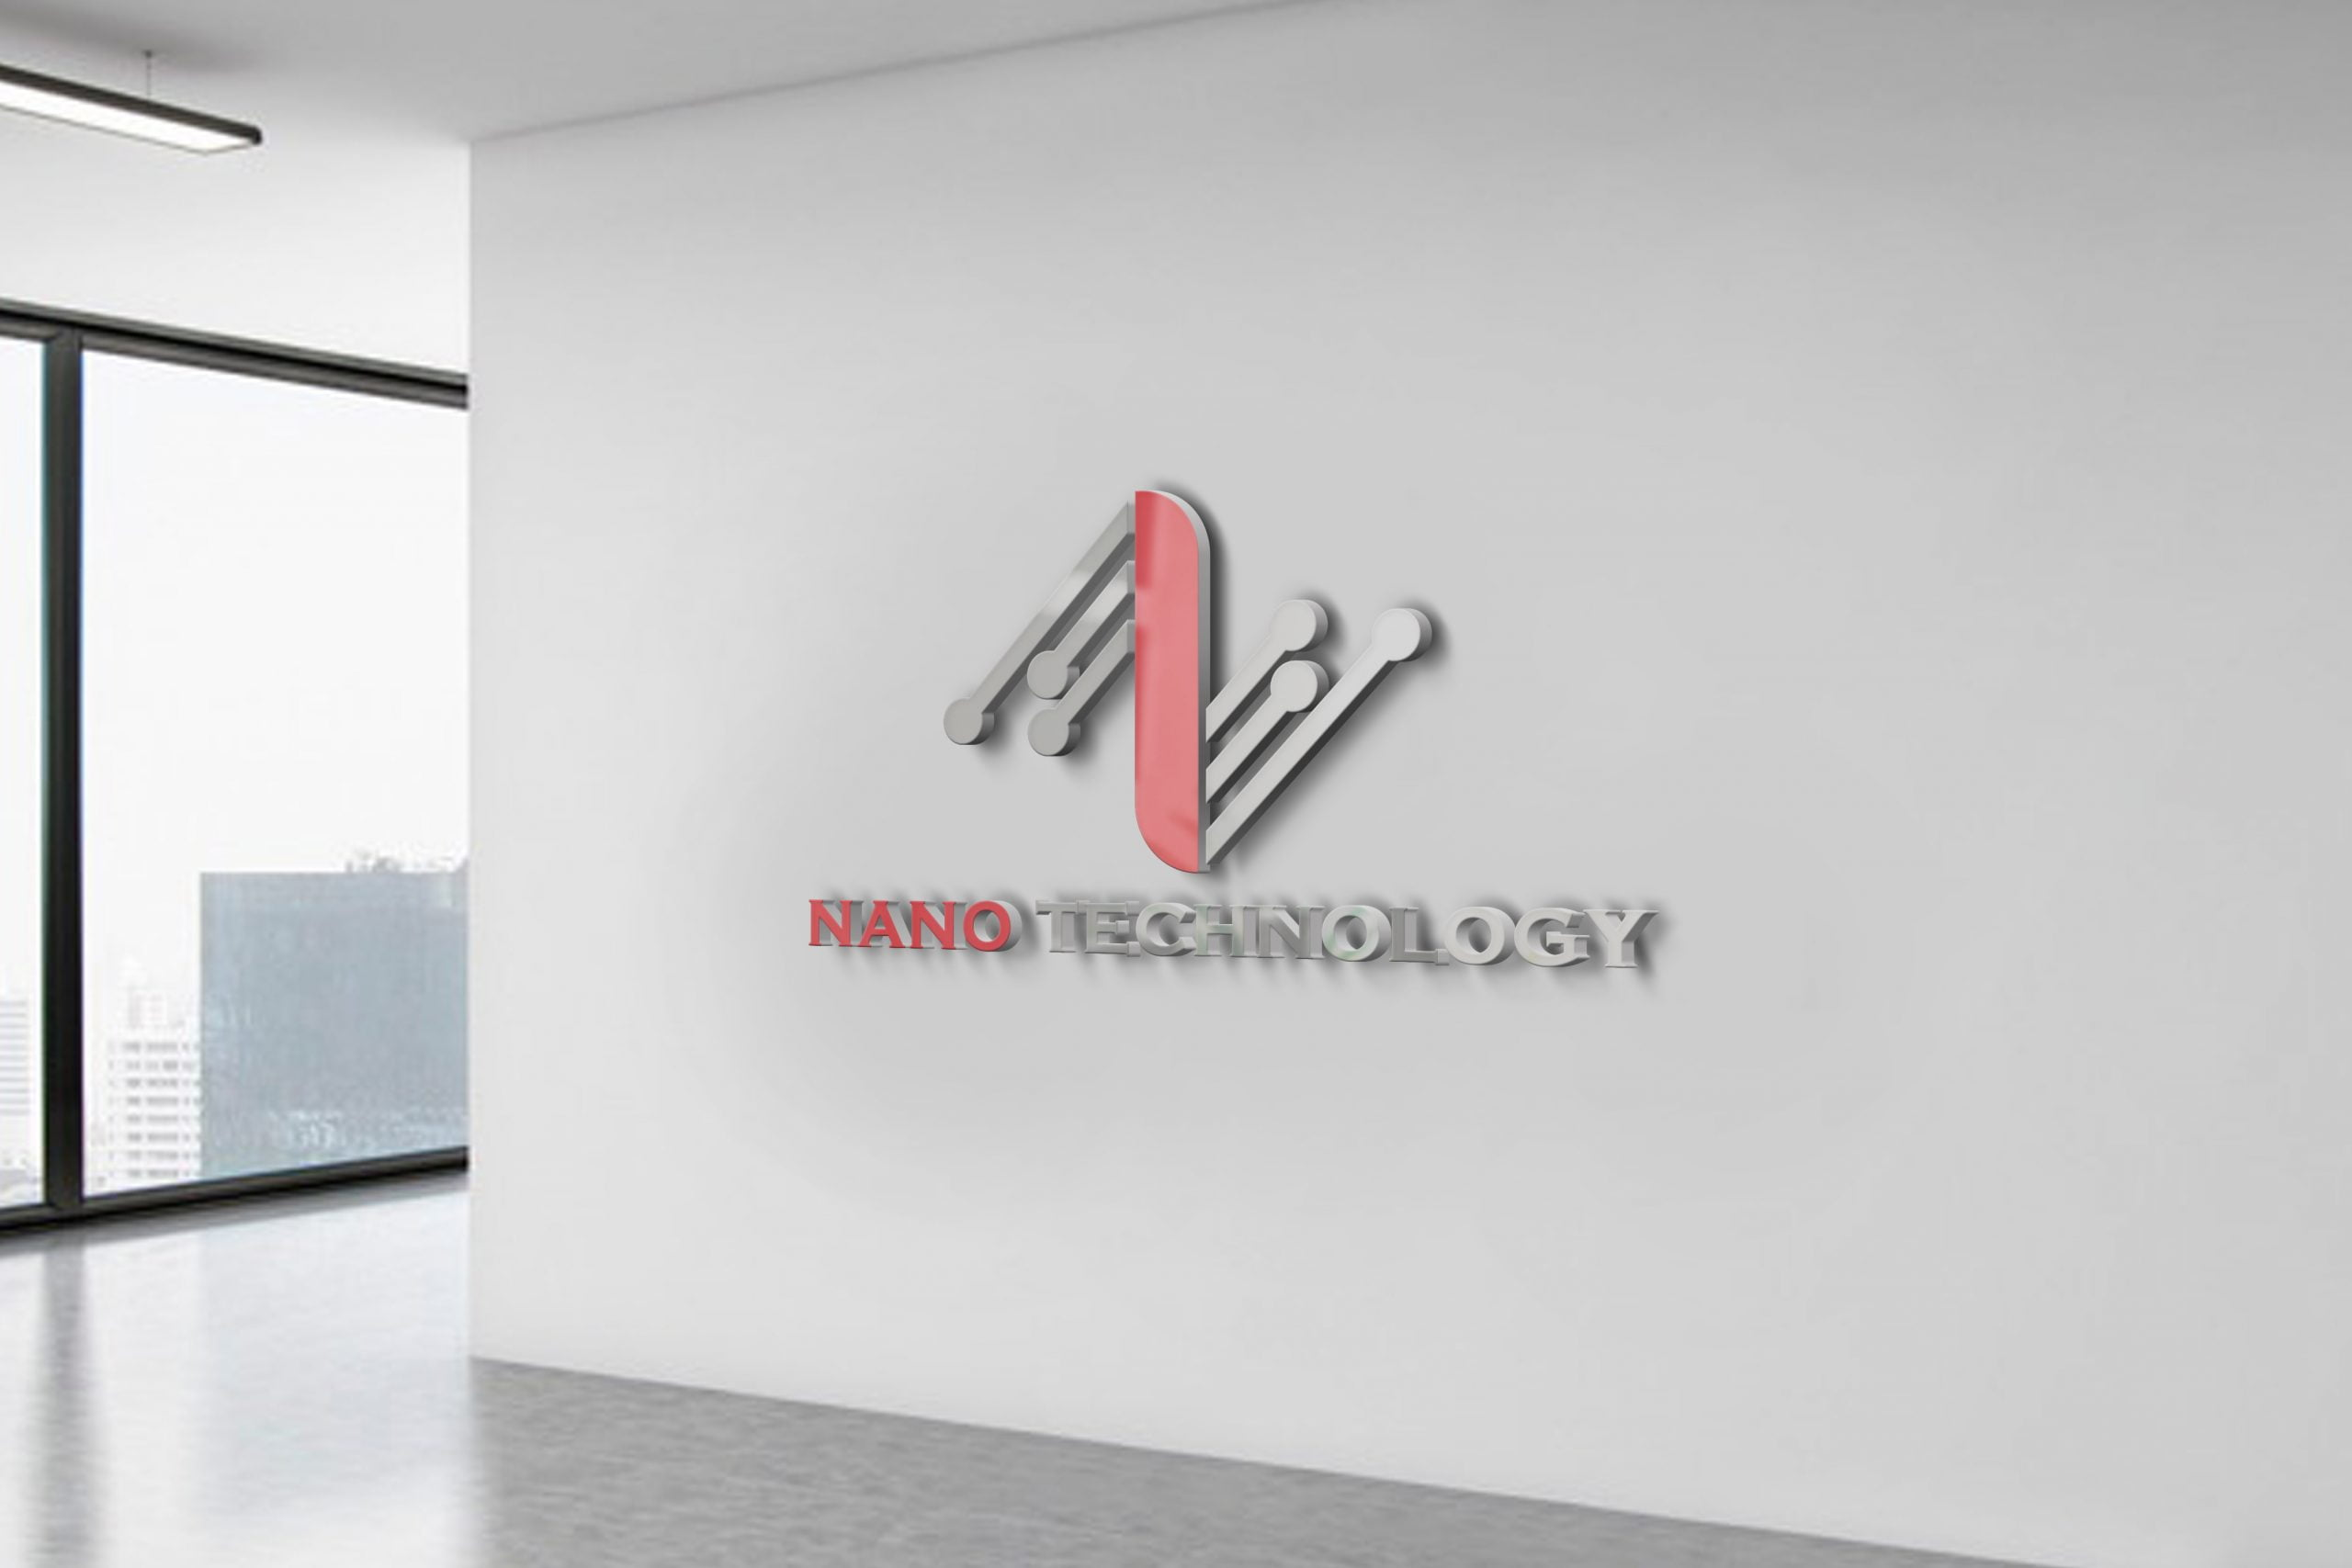 Abstract Technology Logo Design Download